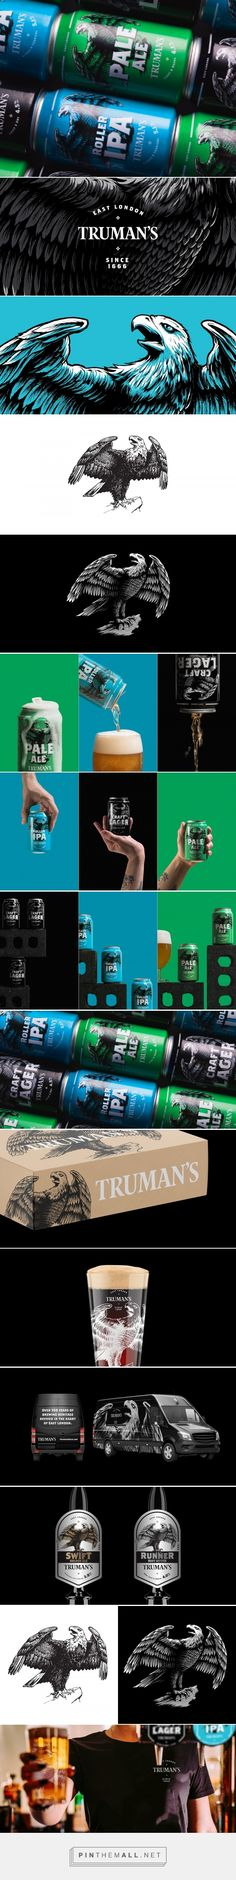 Truman's Brewery - Packaging of the World - Creative Package Design Gallery - http://www.packagingoftheworld.com/2017/11/trumans-brewery.html - created via https://pinthemall.net